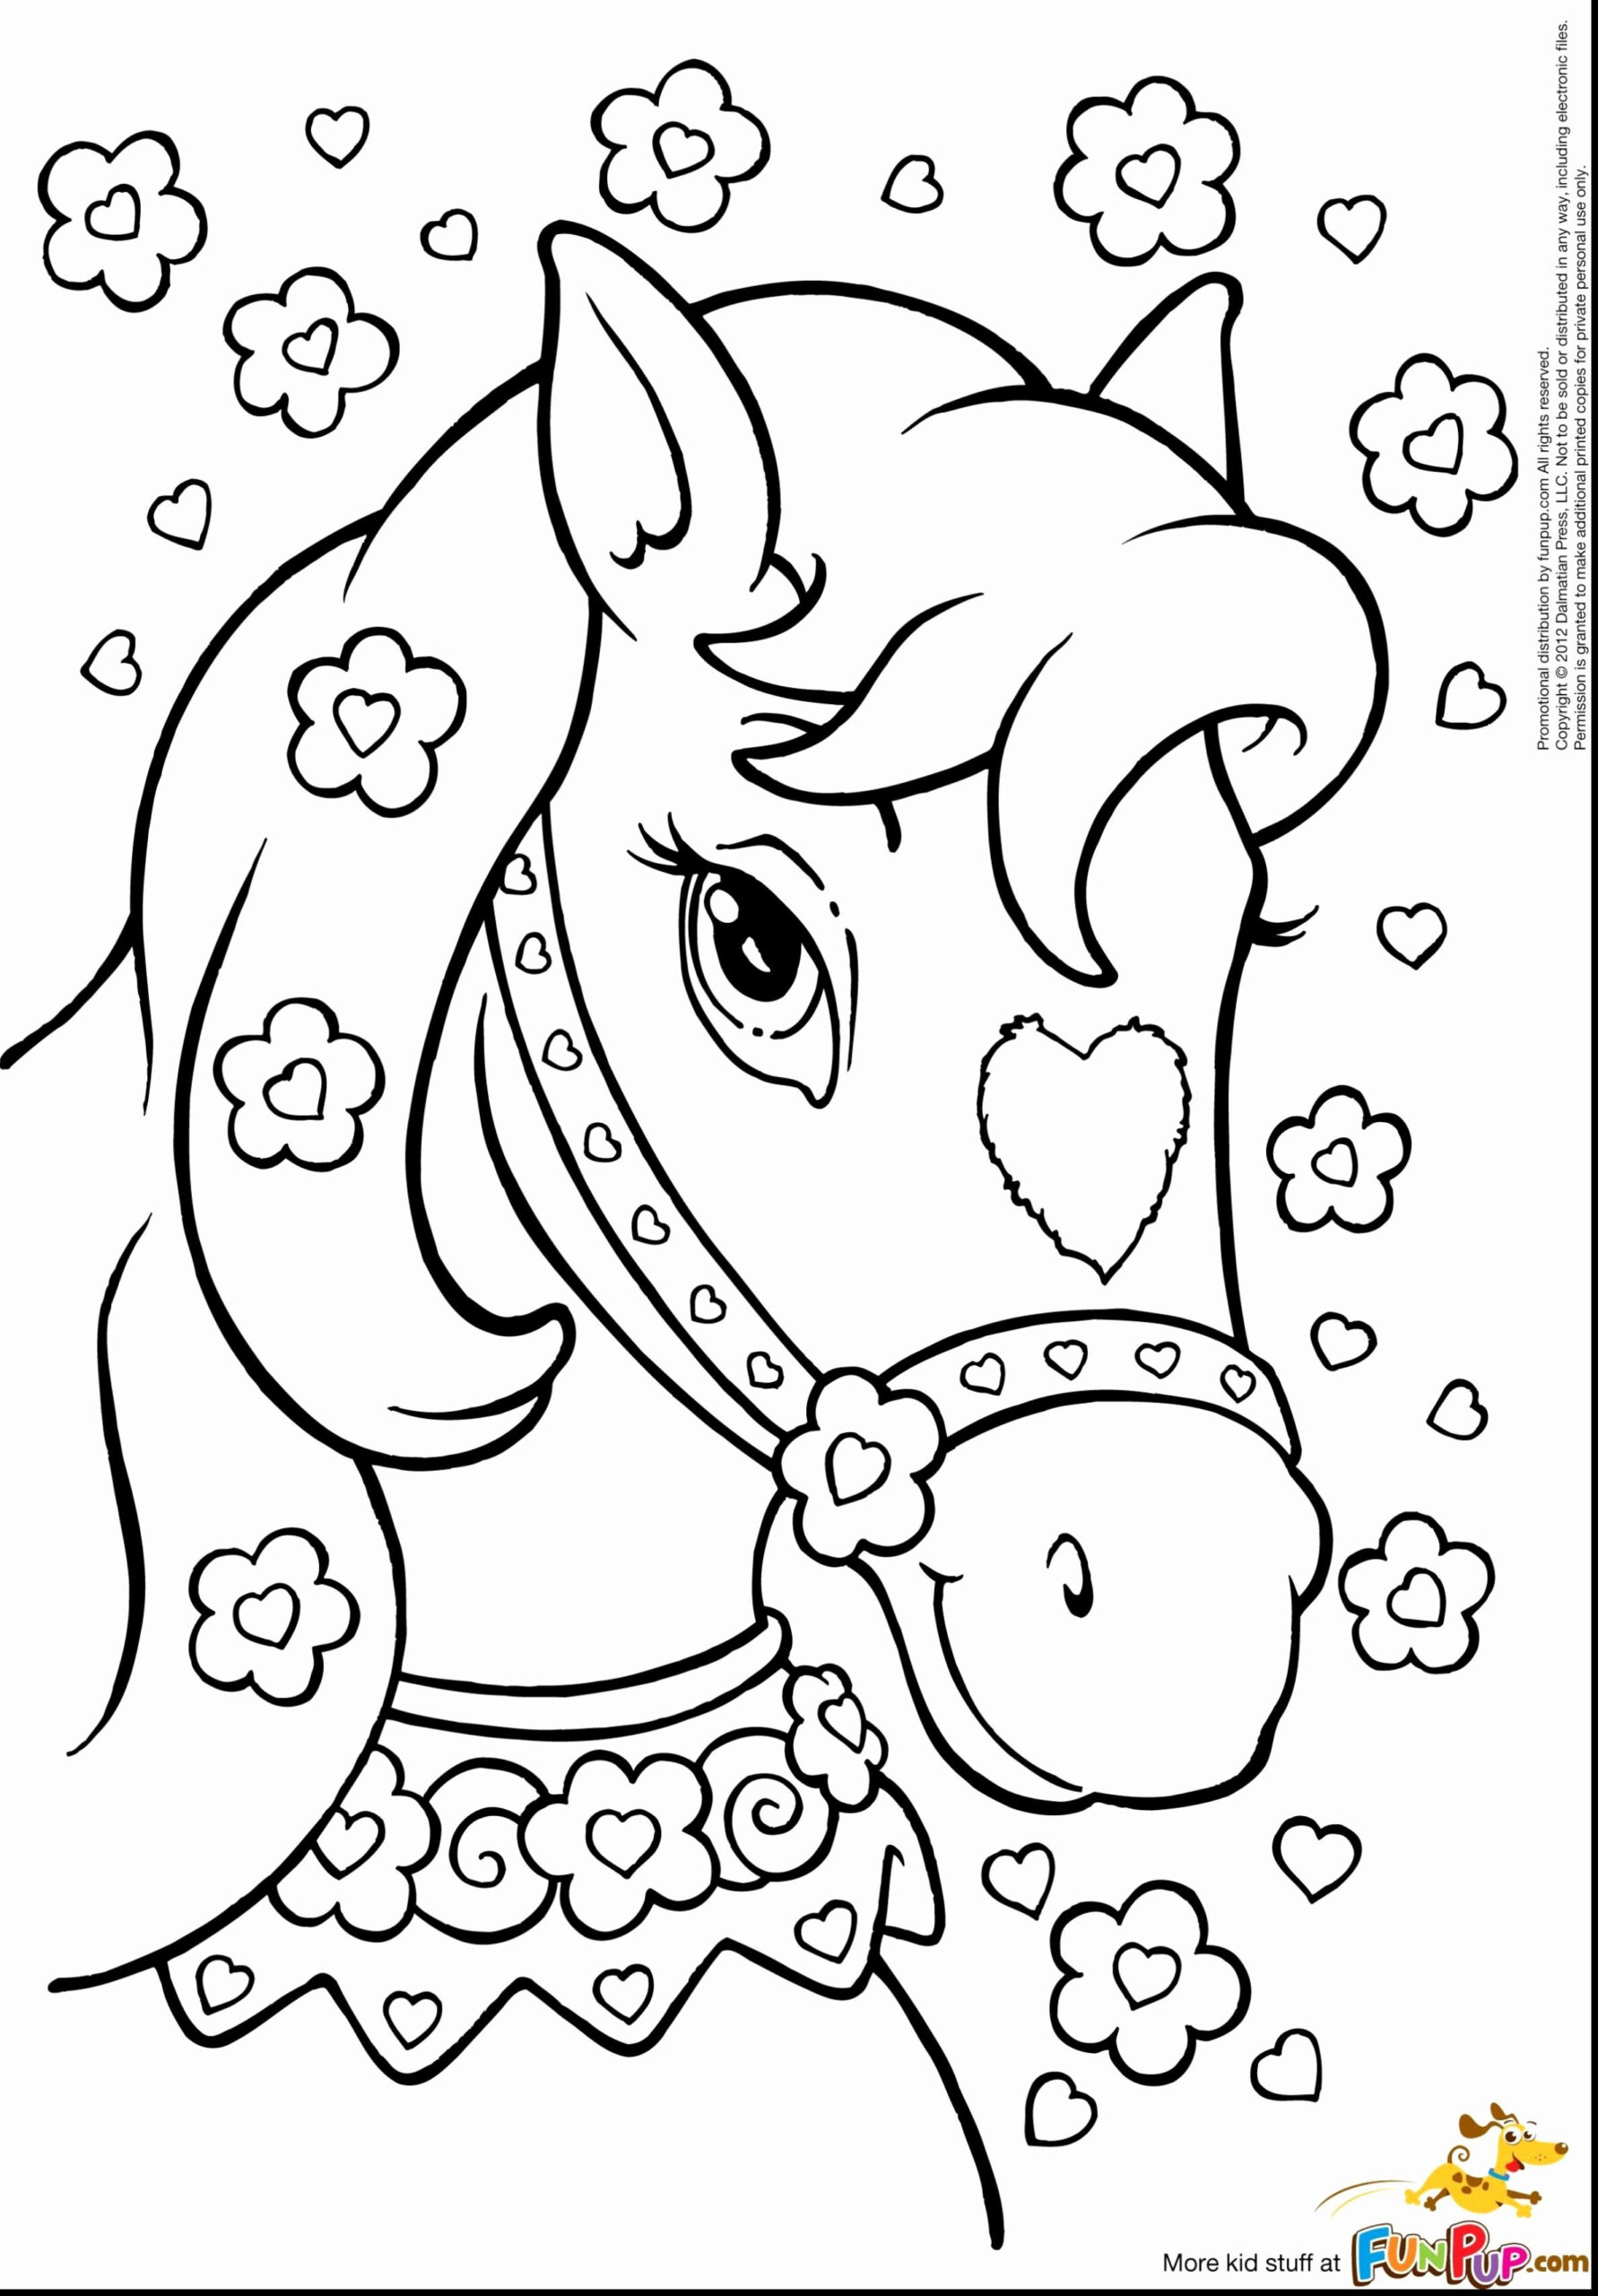 coloring pages for 7 year olds treasure foundjpg 750980 pixels desenho da monica olds year coloring 7 for pages